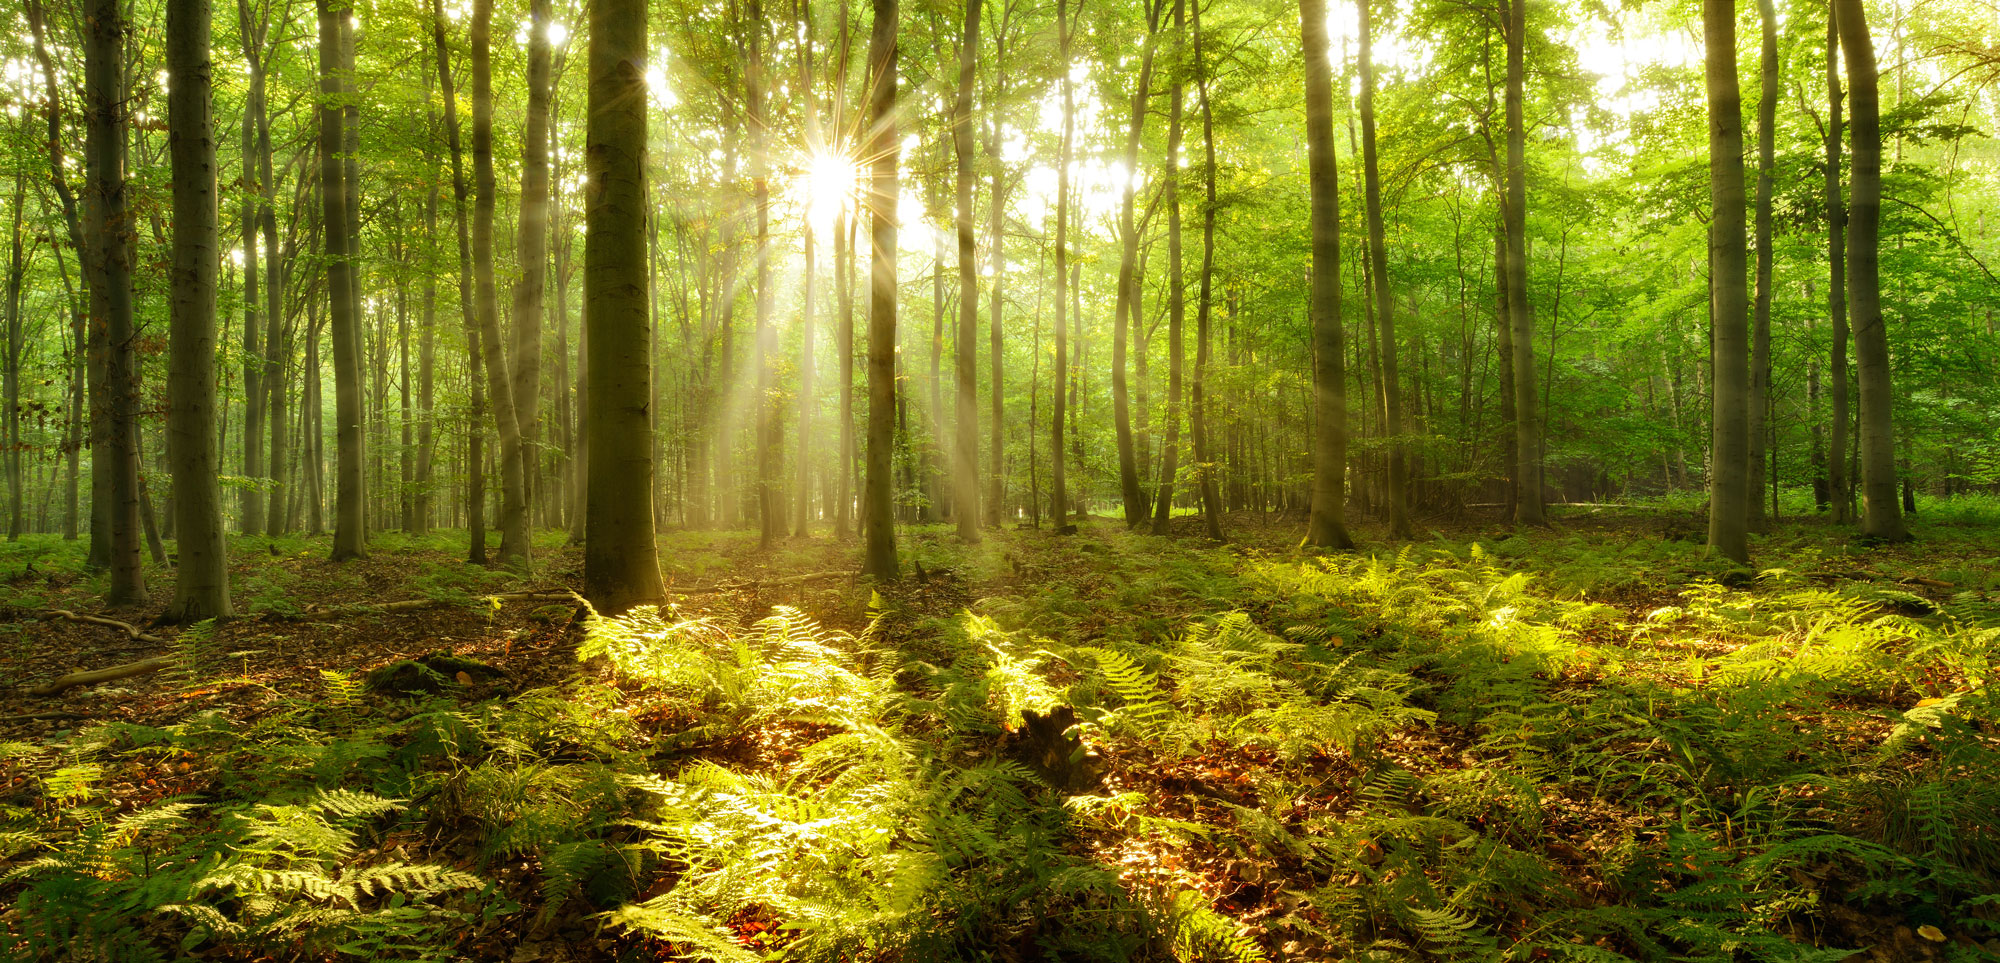 Sunlight breaking through woodland trees